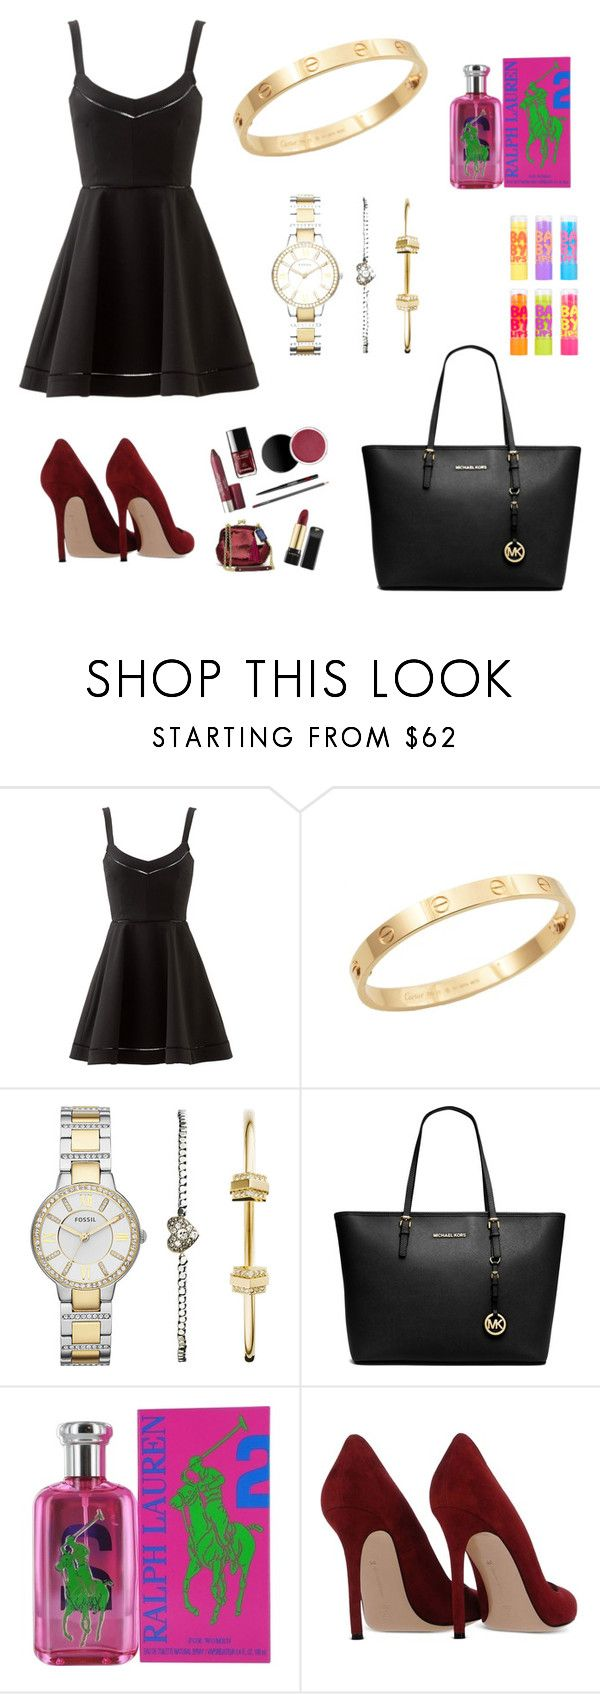 """""""Outfit #7"""" by mariachun on Polyvore featuring Elizabeth and James, Cachet, FOSSIL, MICHAEL Michael Kors, Ralph Lauren, Gianvito Rossi and Maybelline"""